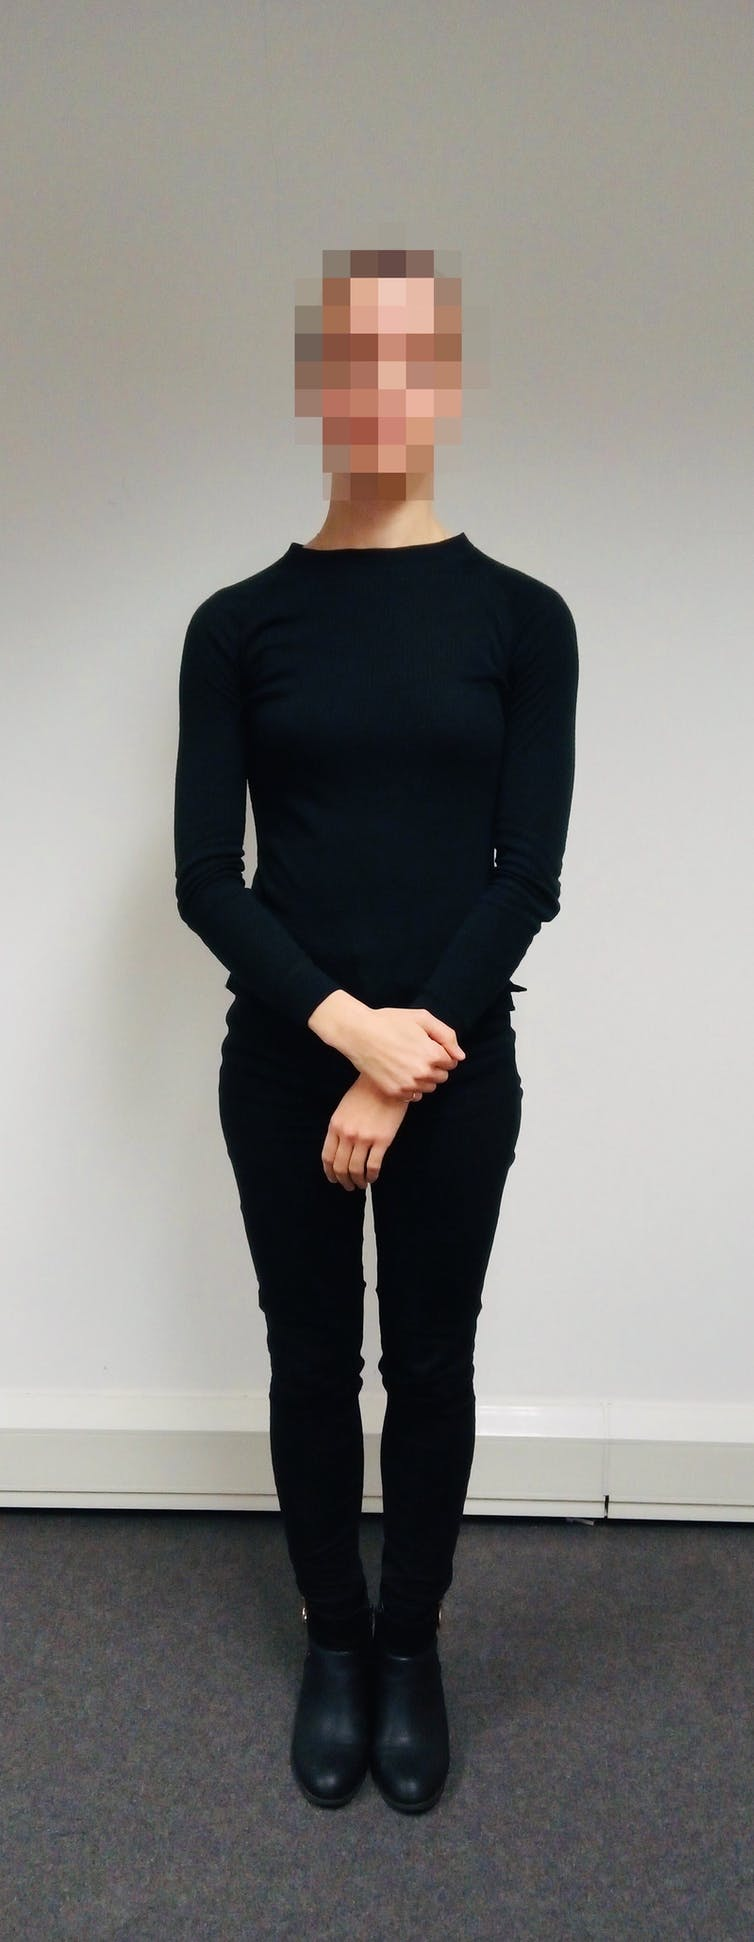 Person standing in a neutral pose